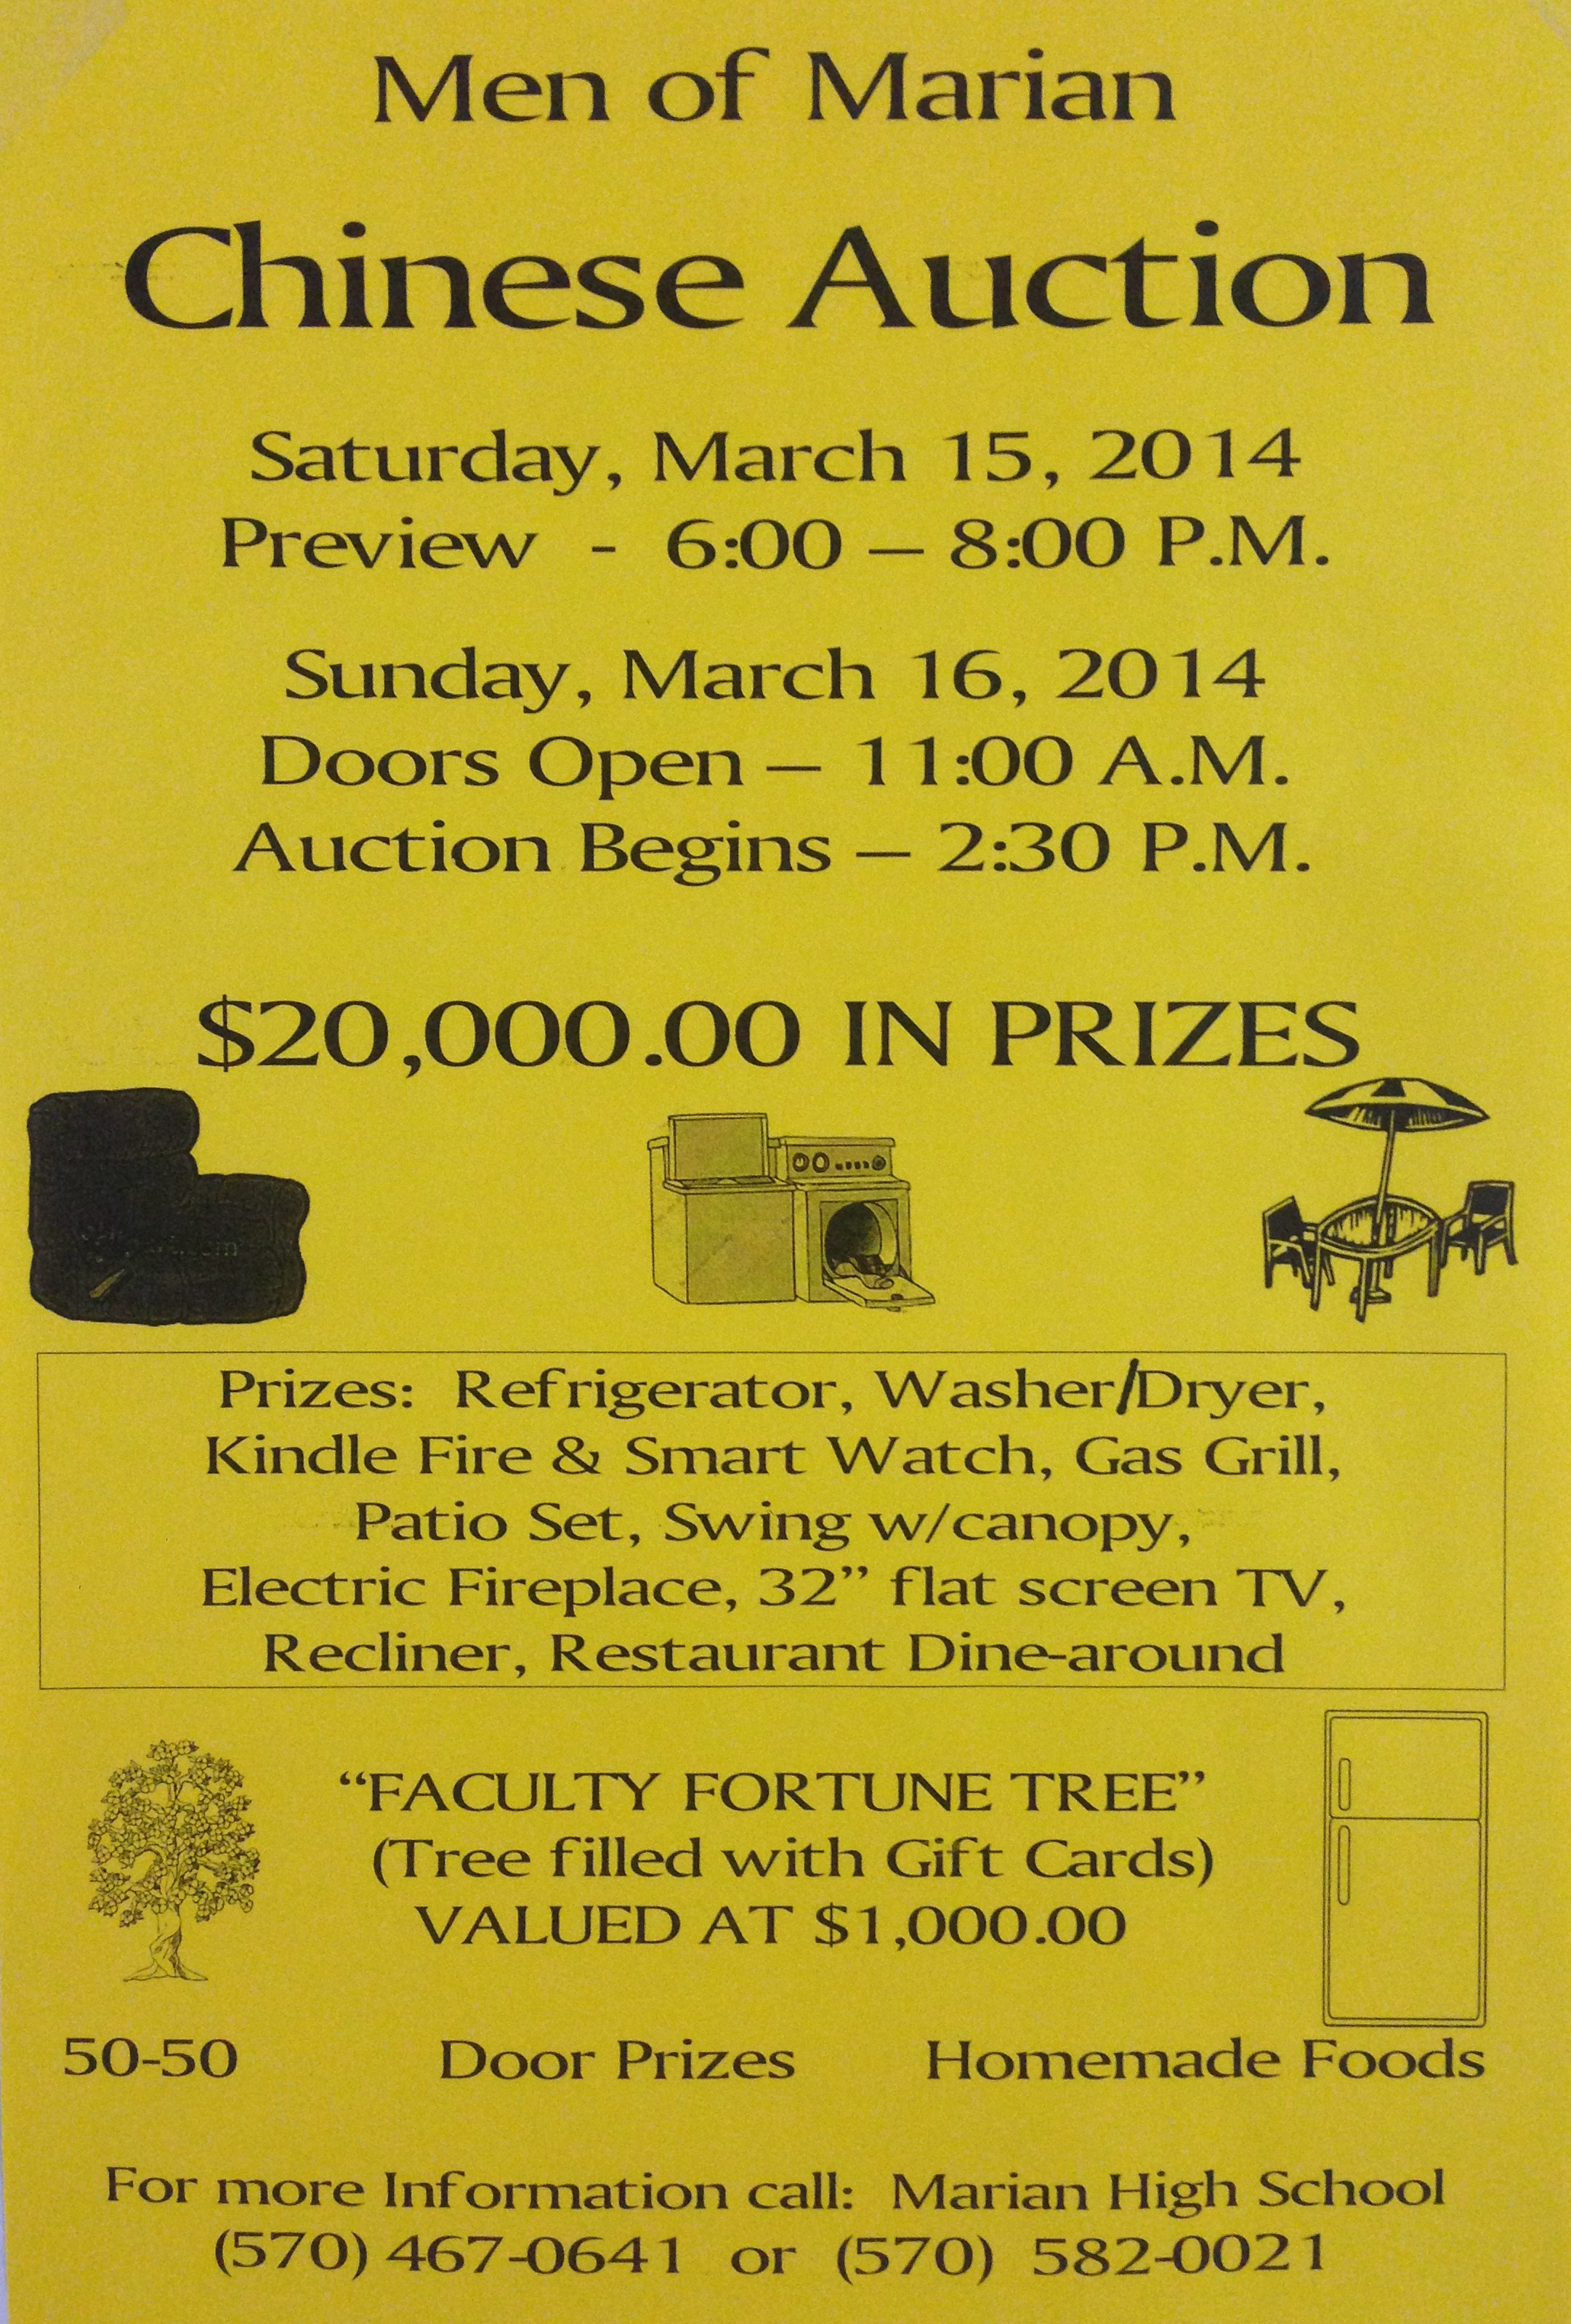 Men of Marian Chinese Auction flyer